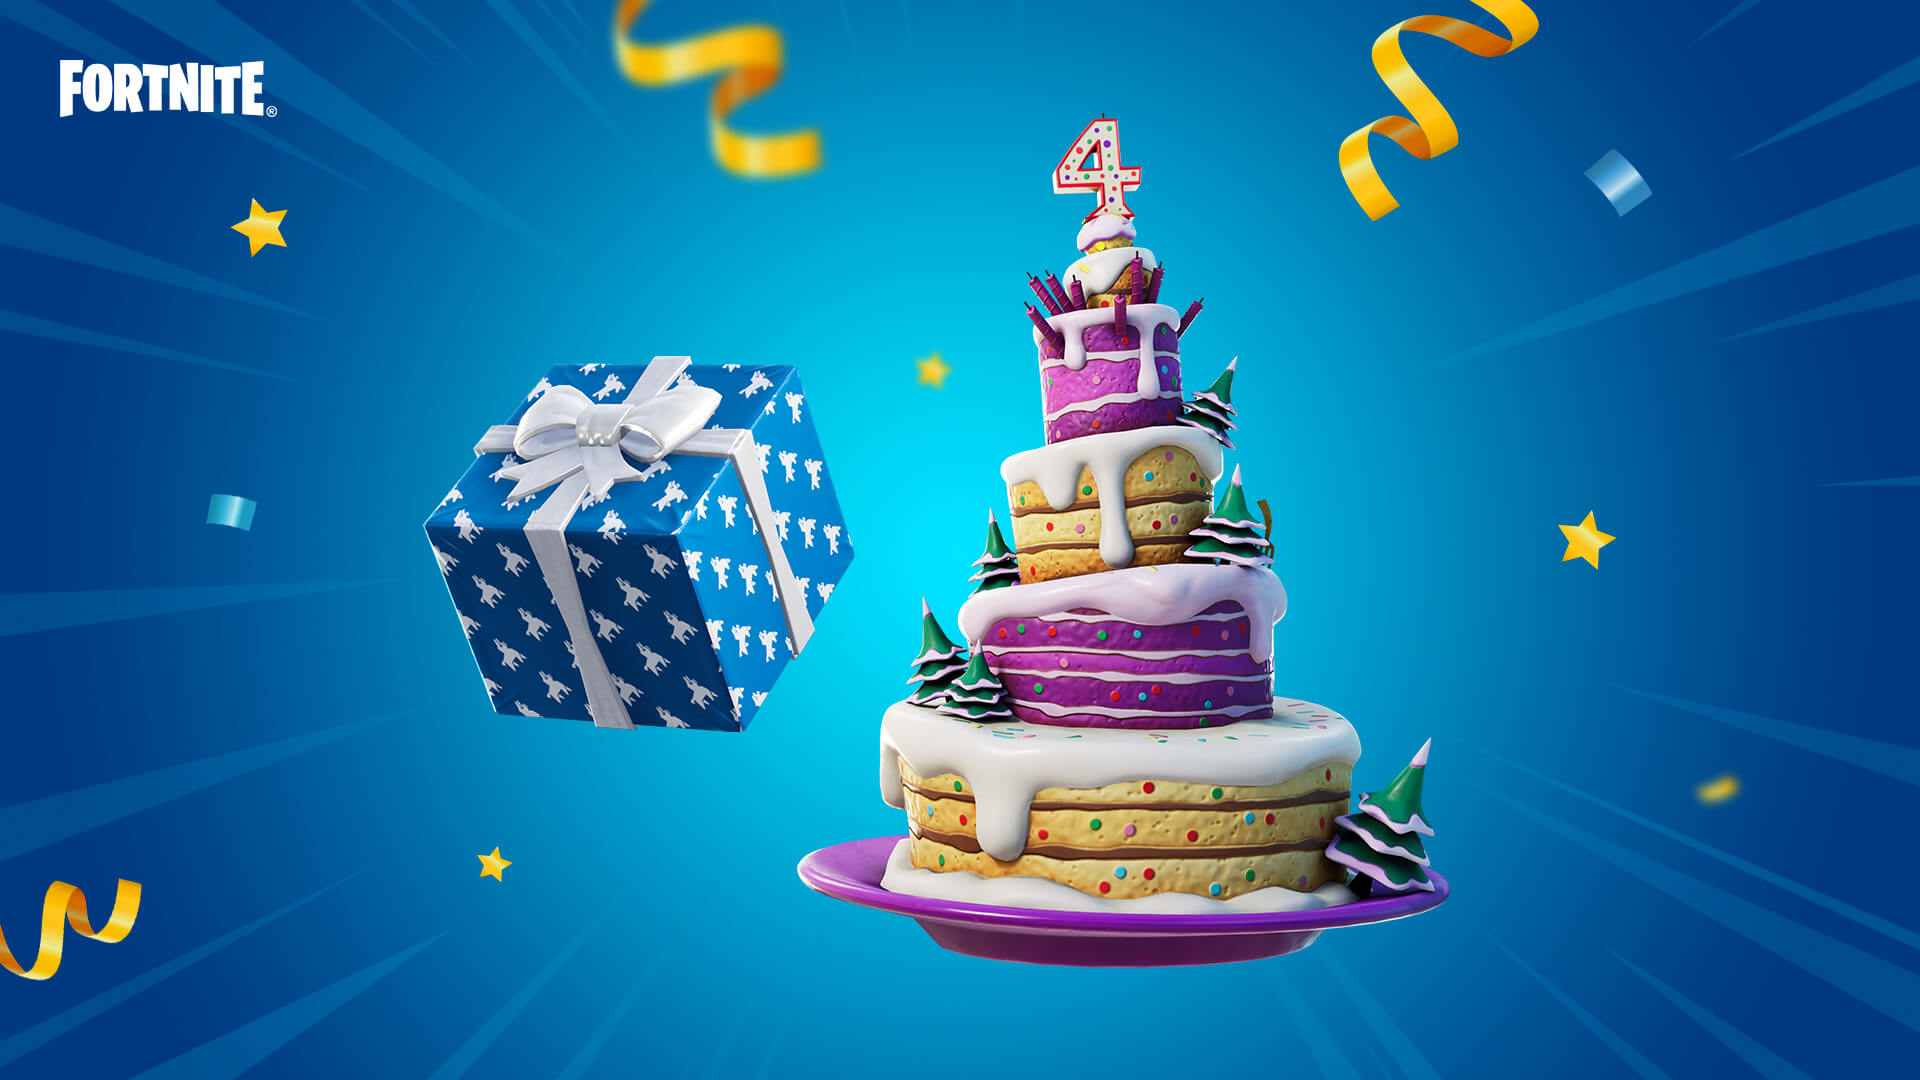 Fortnite: Fourth Anniversary Free Items - Event Start Time, Missions & Gifts